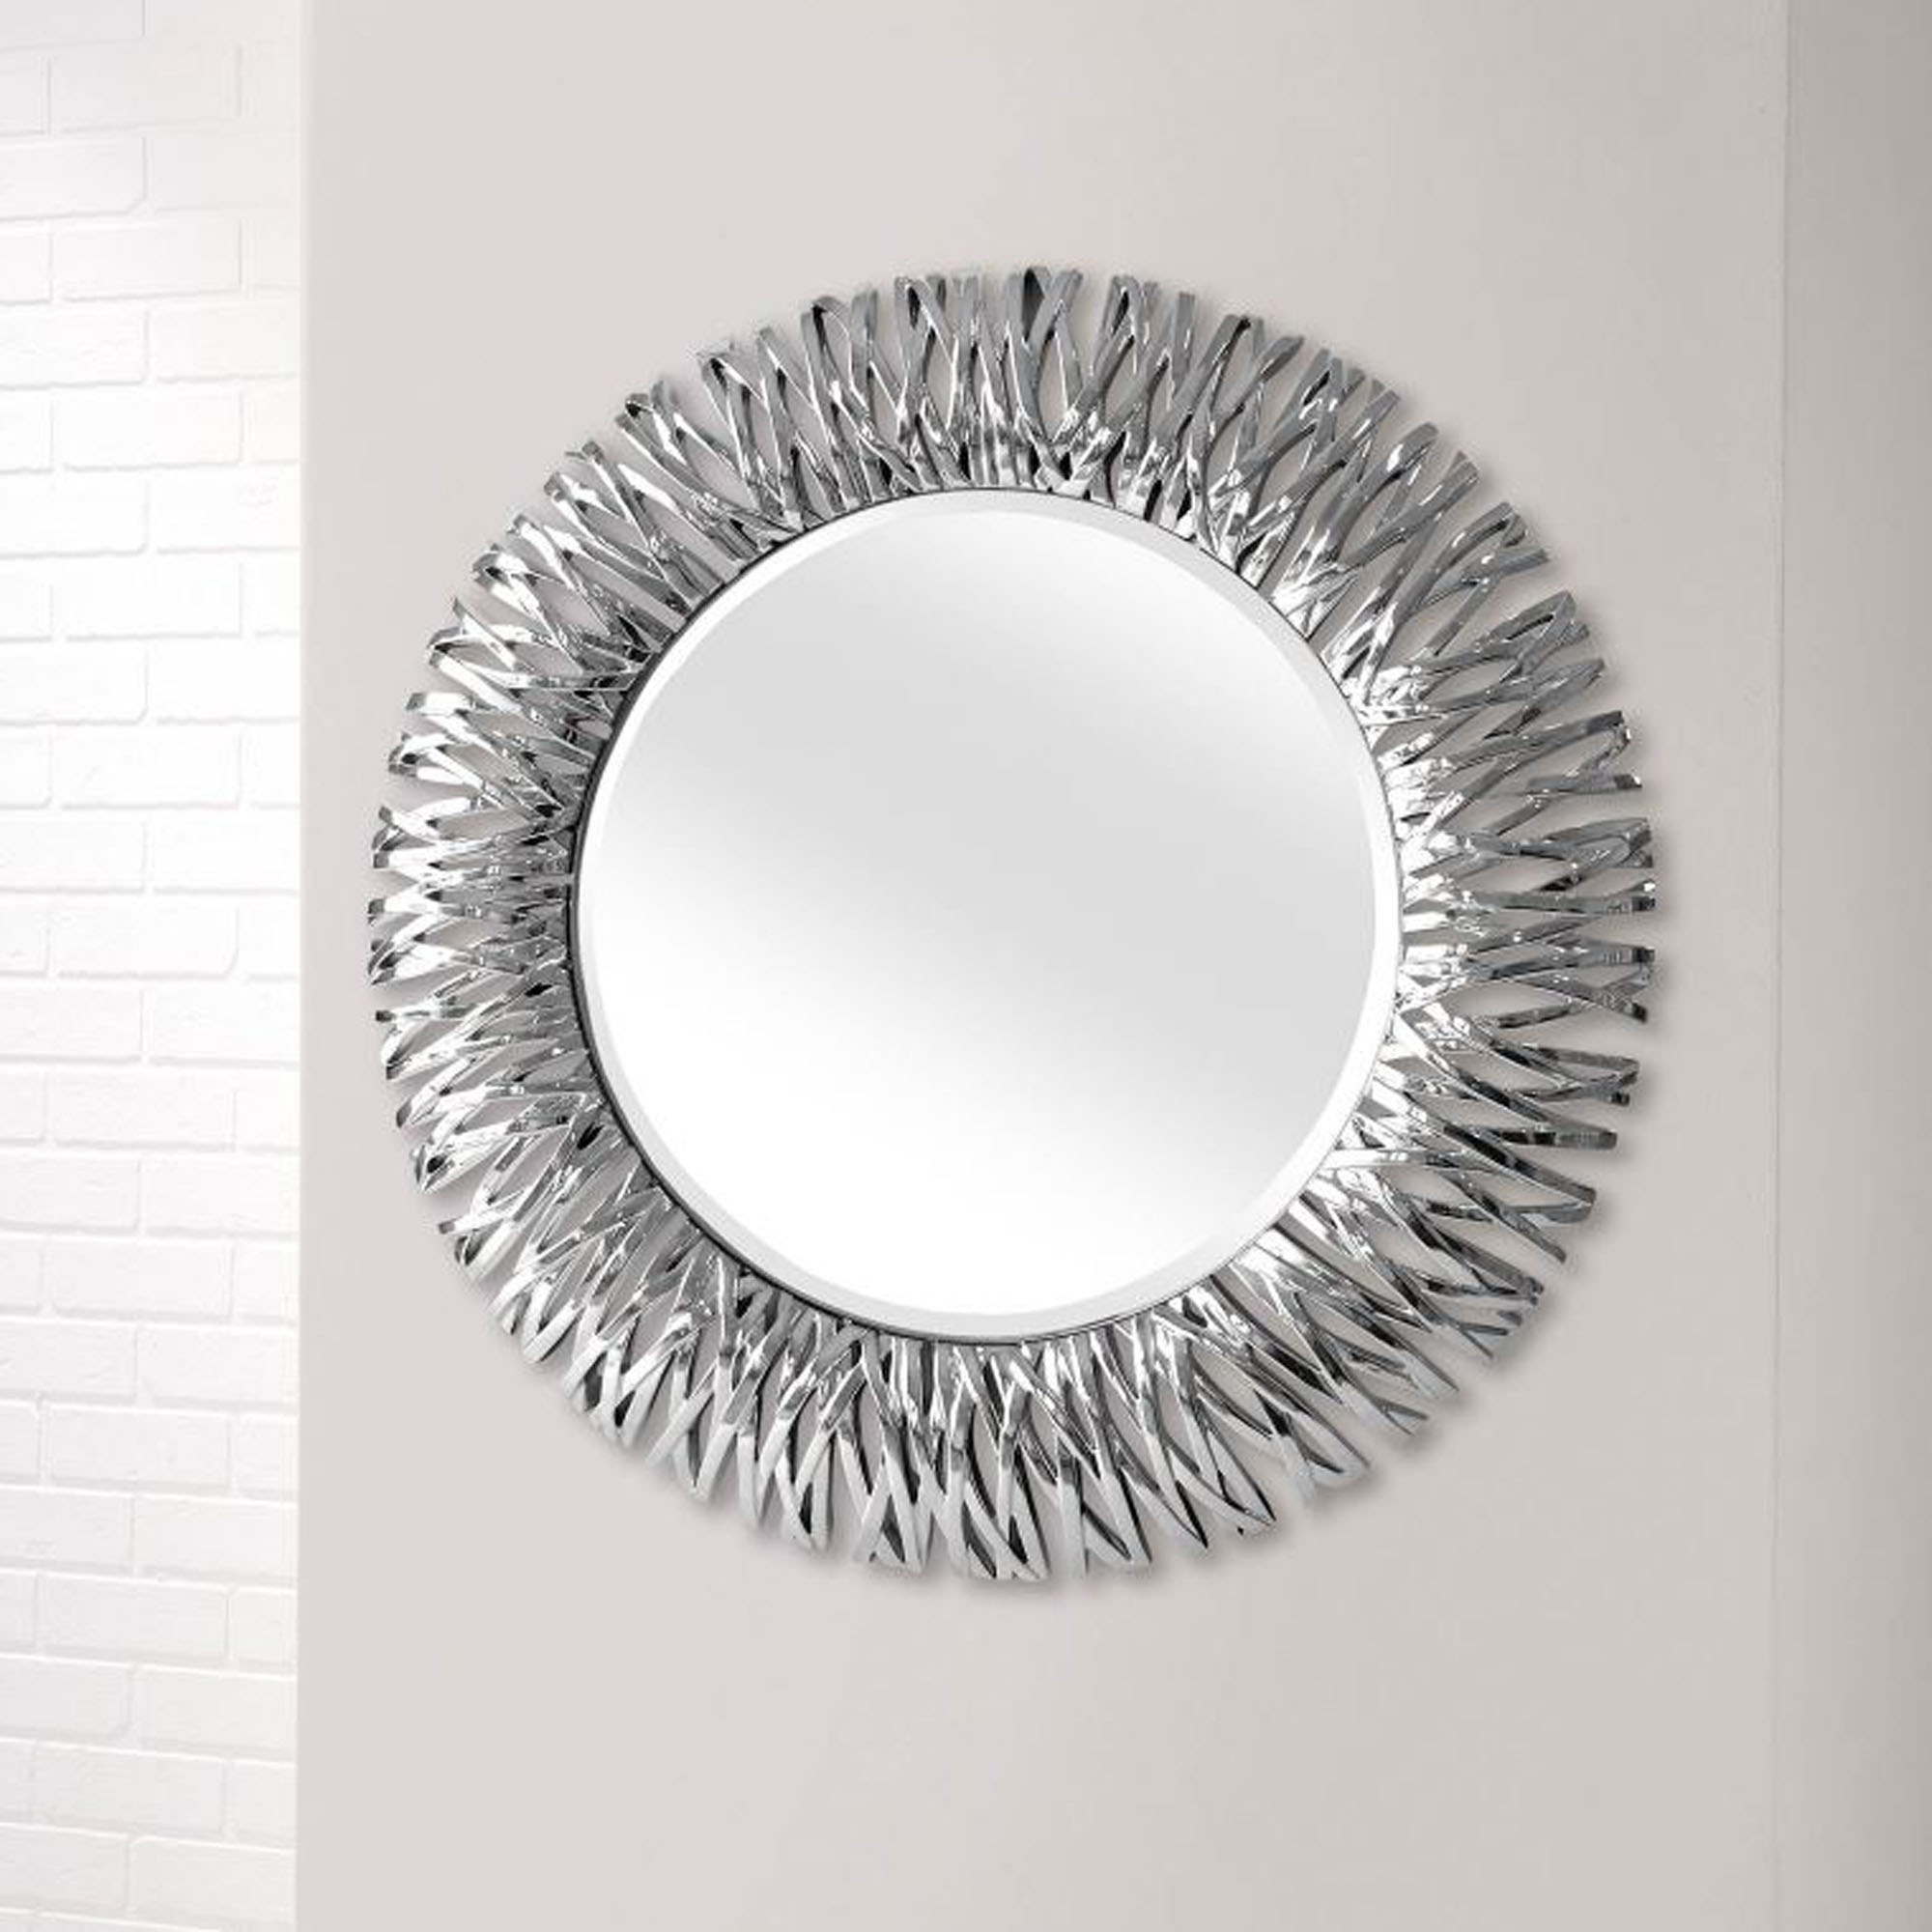 Round White Wall Mirrors Throughout Most Popular Detailed Chrome Silver Round Wall Mirror (View 5 of 20)